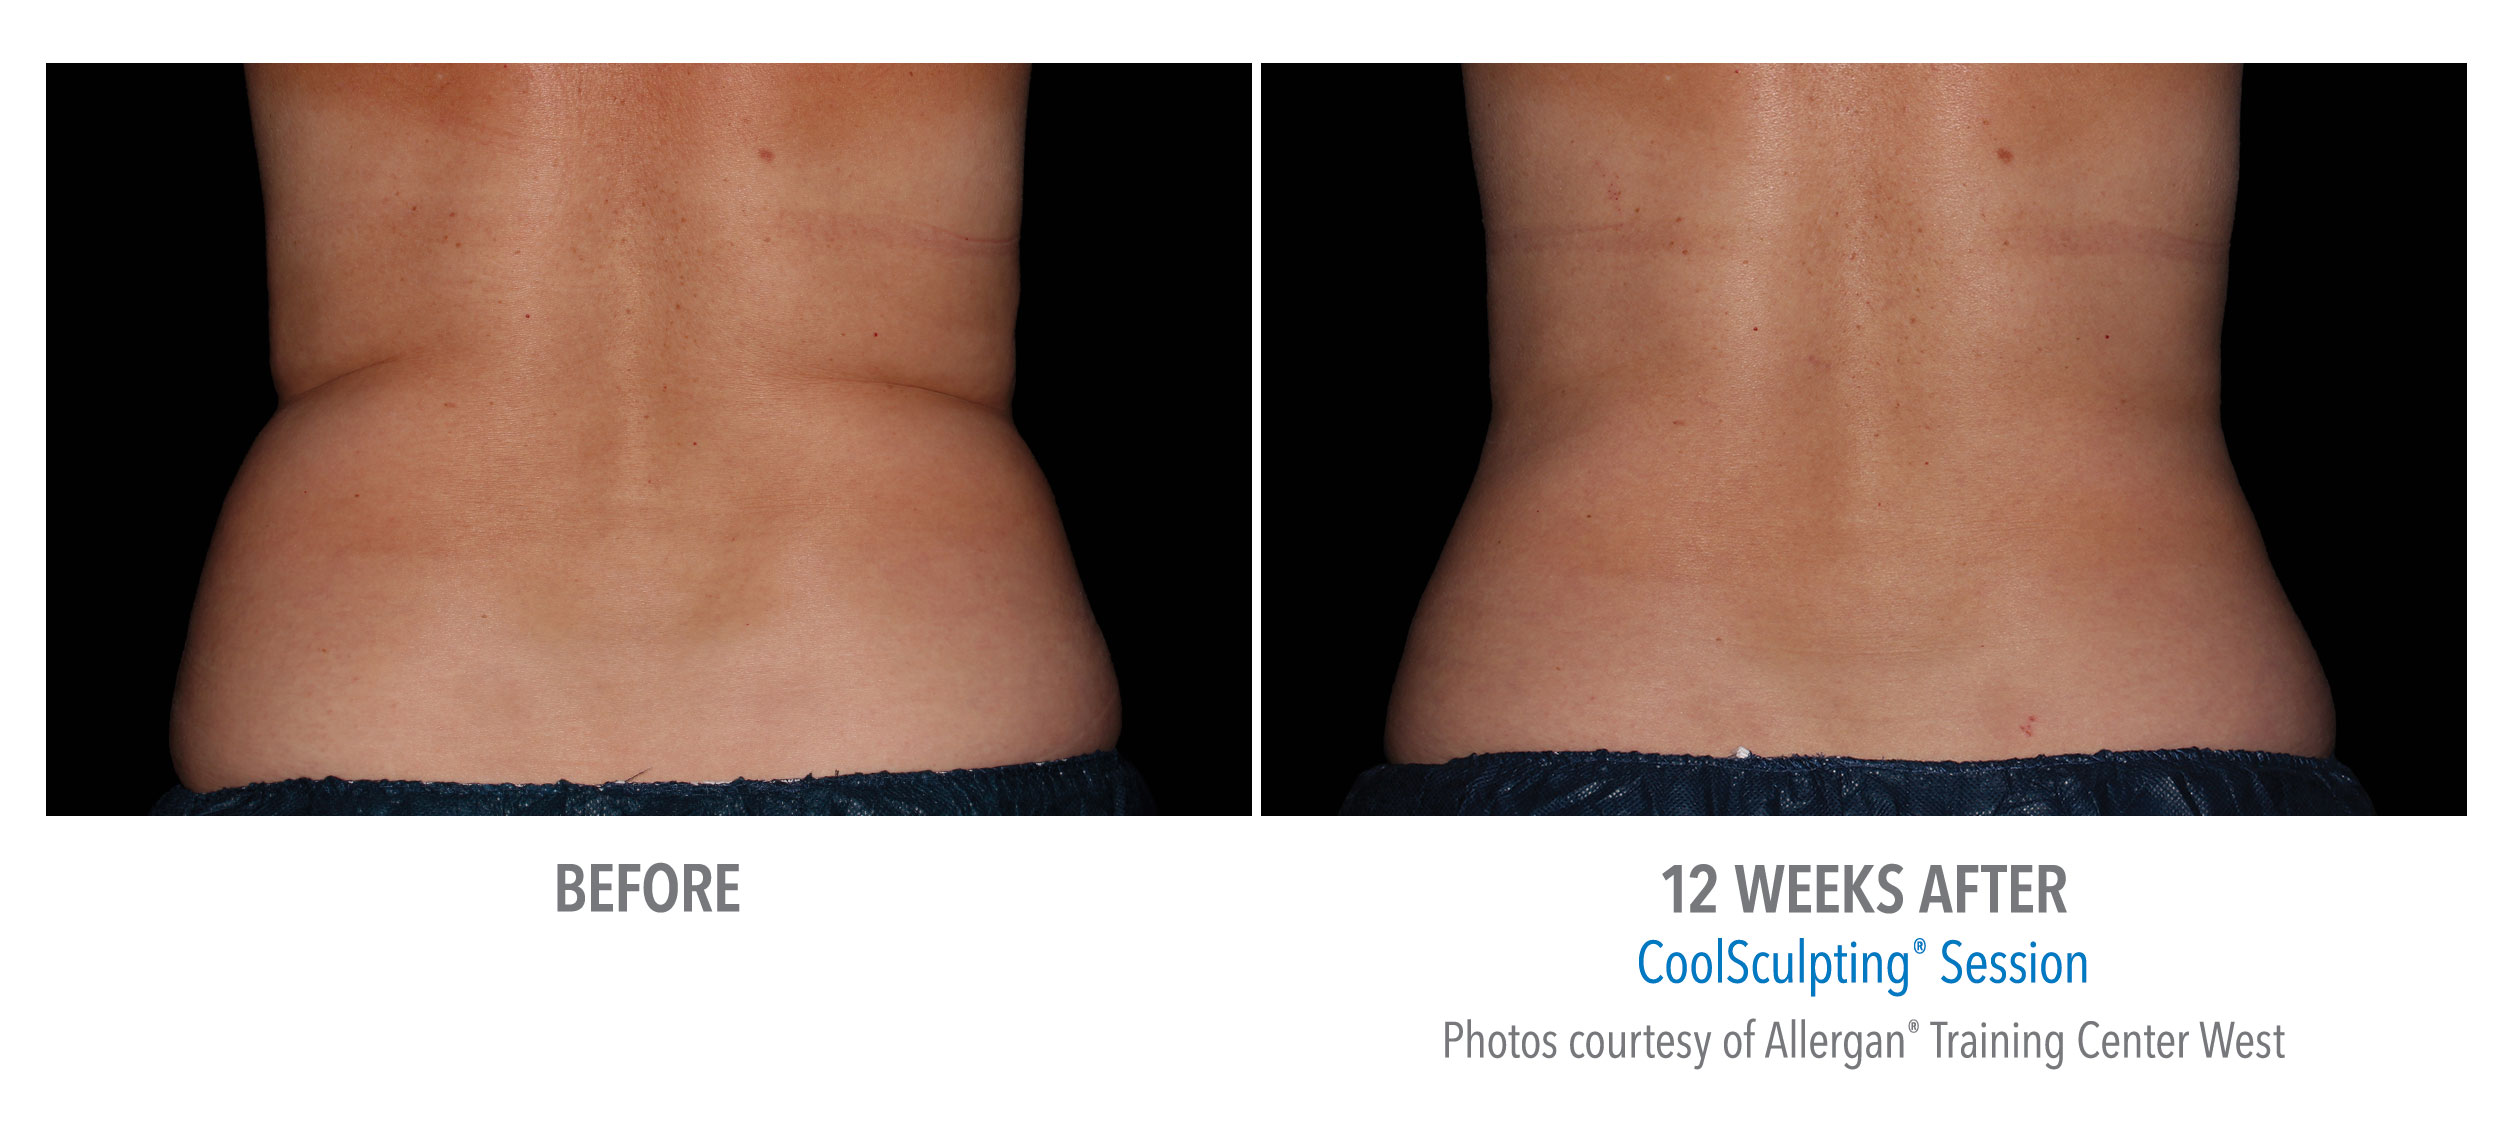 whittier-coolsculpting-back-flank-lower flank-coolsculpting6